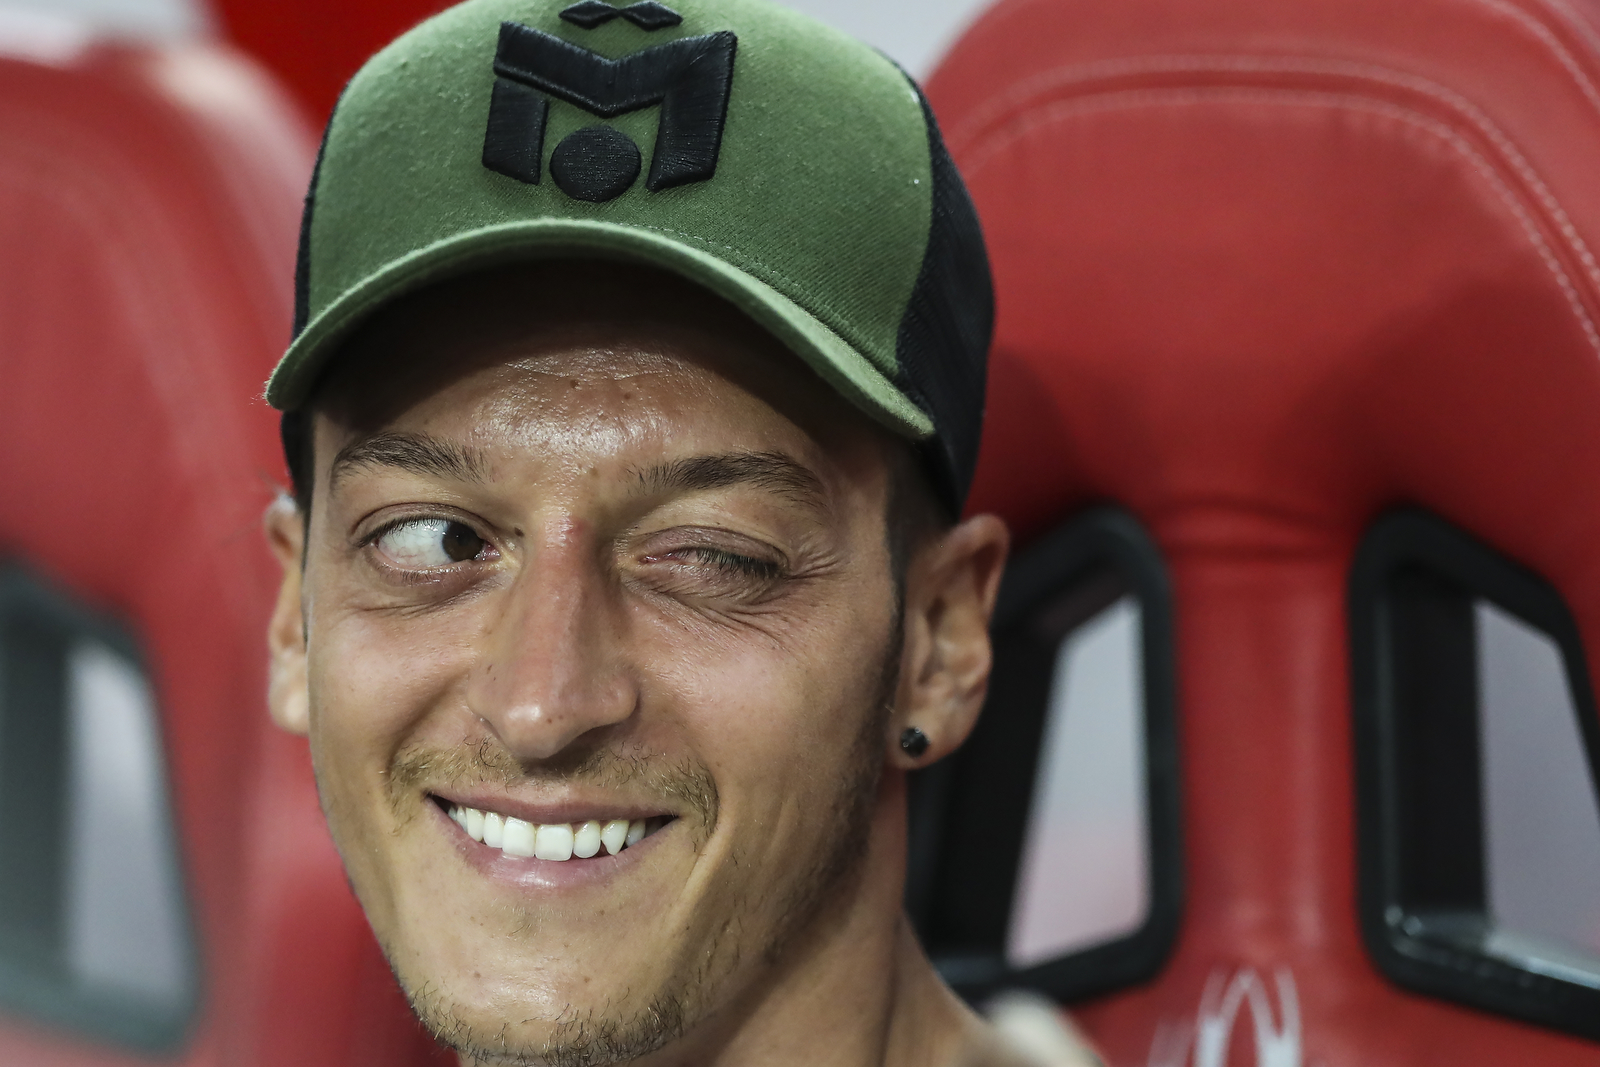 Arsenal's Mesut Ozil winks to a teammate on the bench during the International Champions Cup match between Arsenal and Atletico Madrid in Singapore, Thursday, July 26, 2018. (AP Photo/Yong Teck Lim)